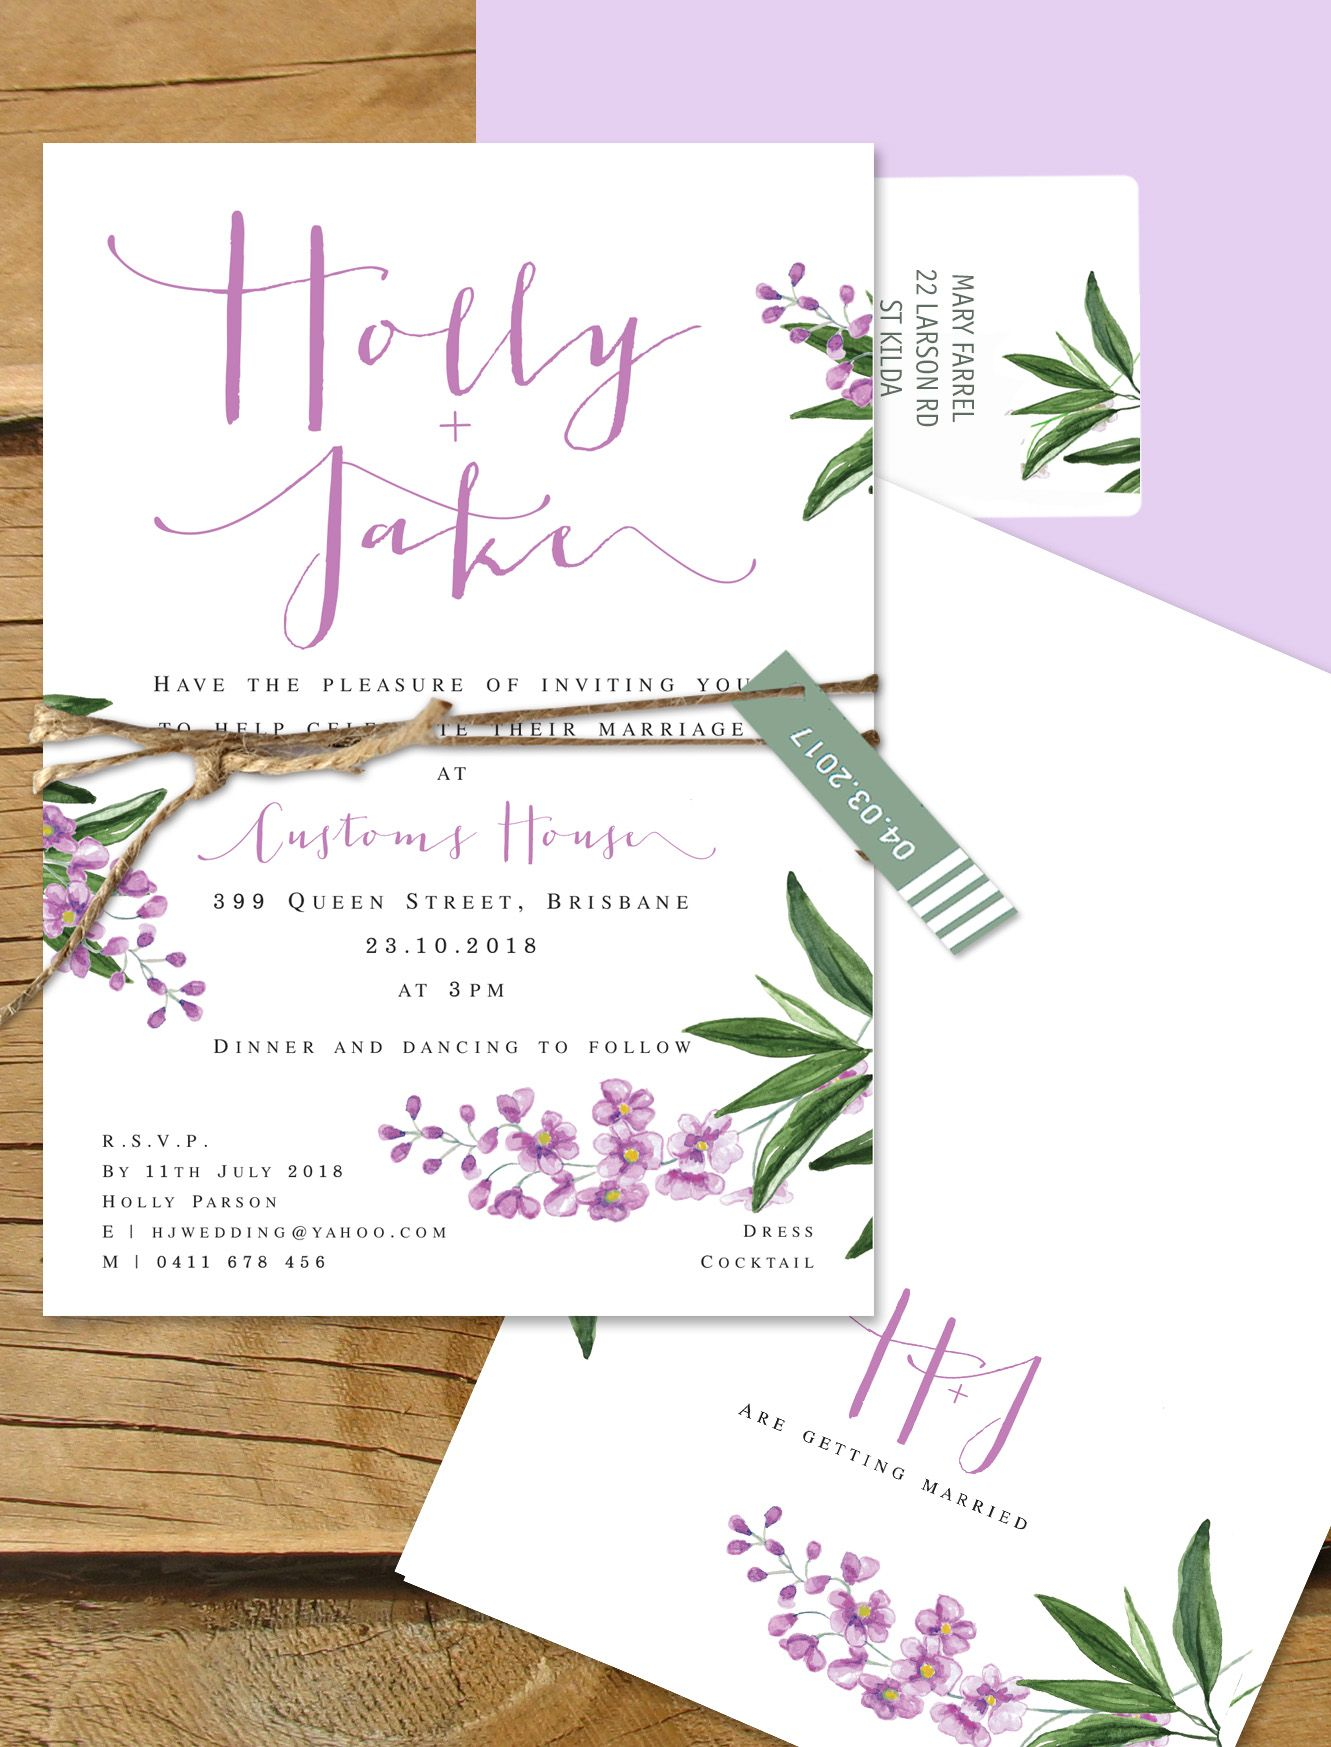 Lilac floral wedding invitation. Paris in the springtime.   Lilykiss ...